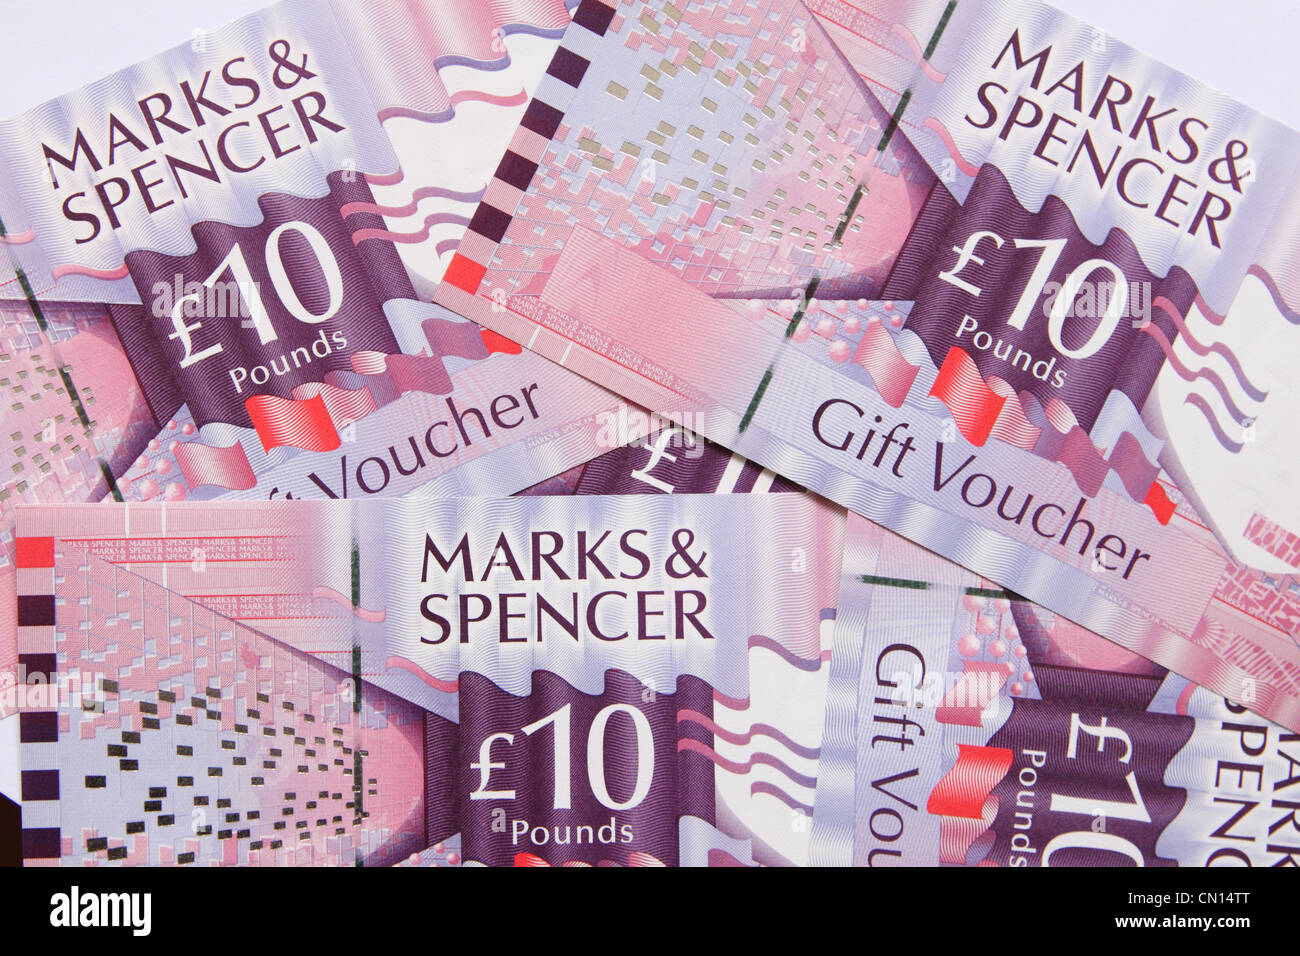 Marks and Spencer free delivery discount code: Palace your first wine case order and get a discount of £ from Marks and Spencer Presenting some of the verified deals and offers for Marks and Spencer. This is the most recent offer available for Marks and Spencer.